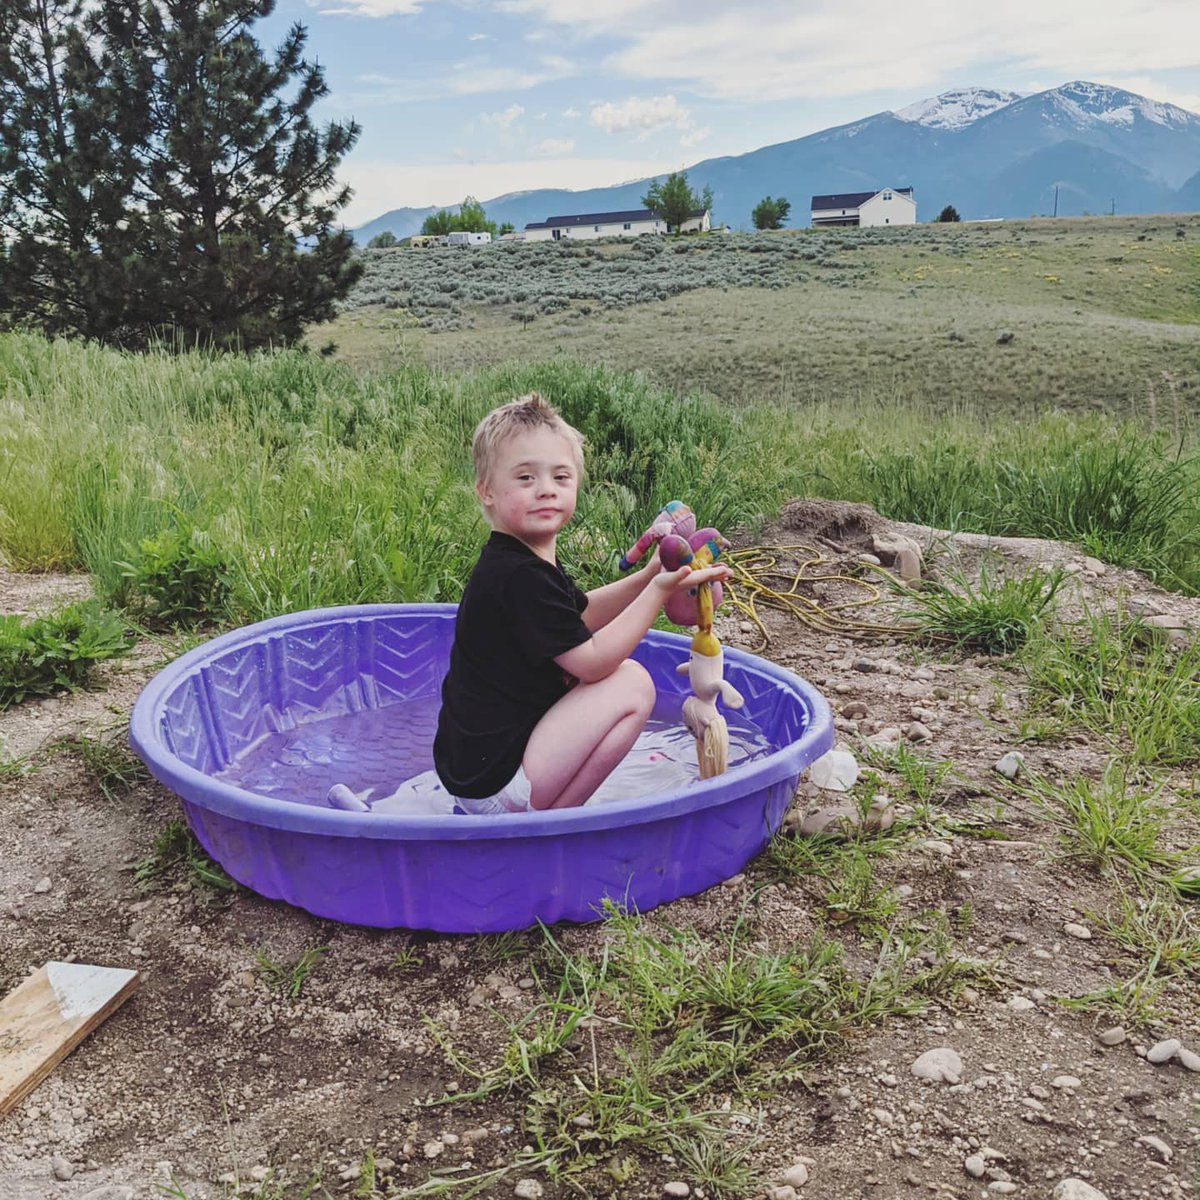 Spa day!  #spaday #Montana #howwedo #Montana406 #water #hotday #DownSyndrome #specialneeds